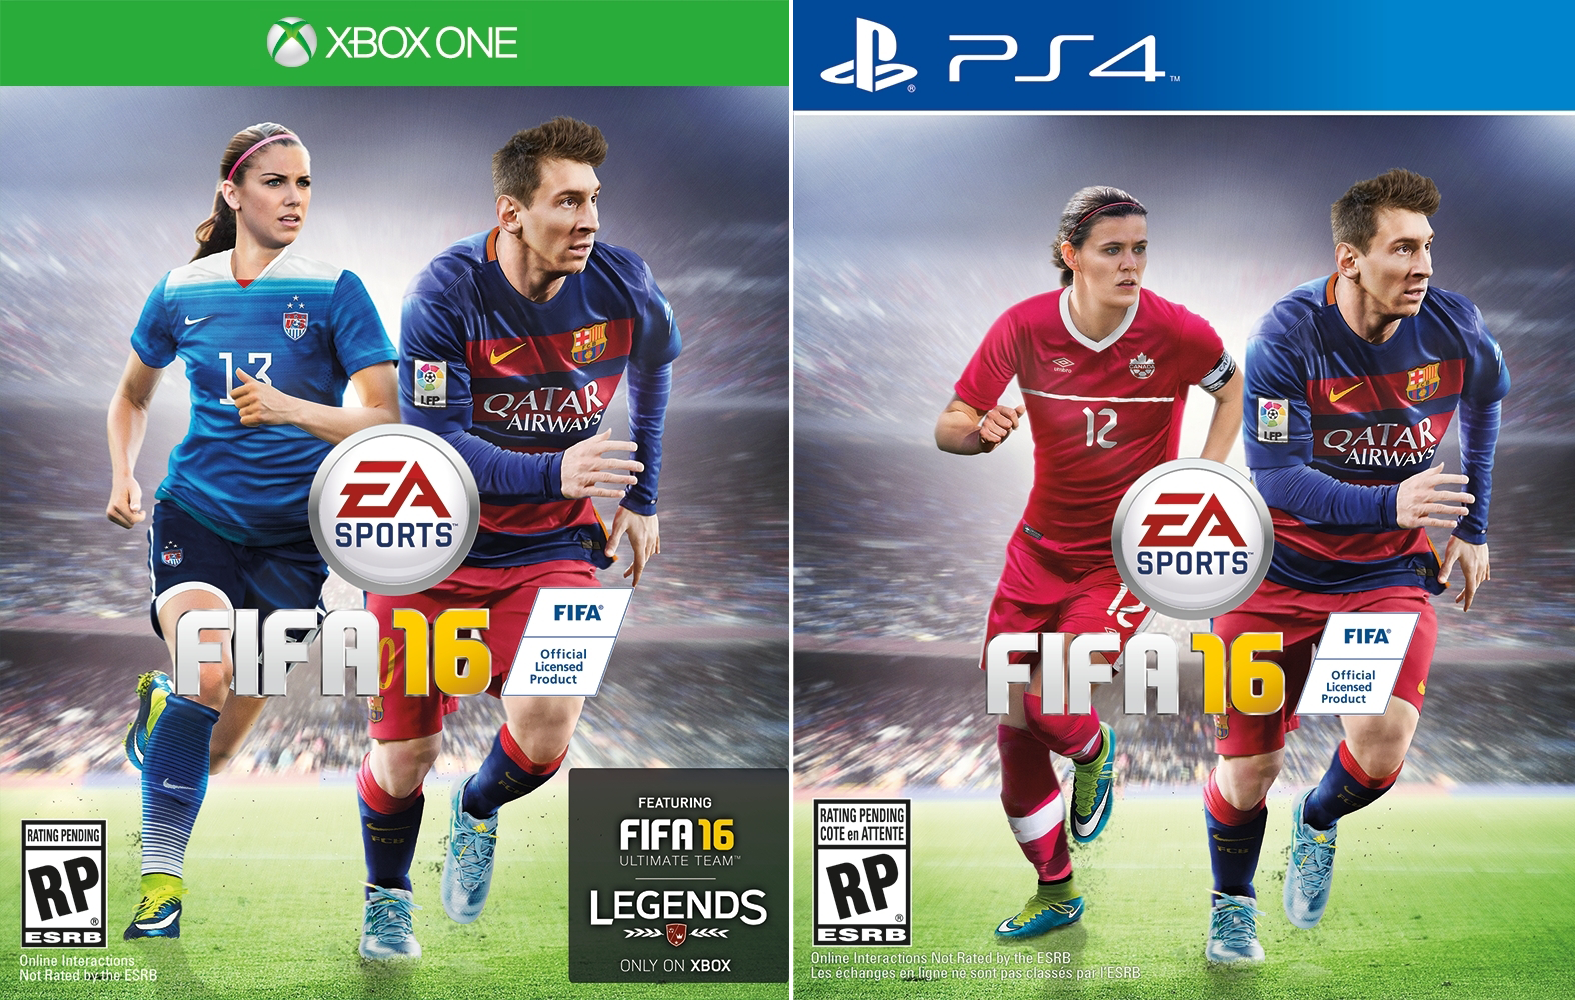 fifa 16 cover revealed women football stars to feature. Black Bedroom Furniture Sets. Home Design Ideas